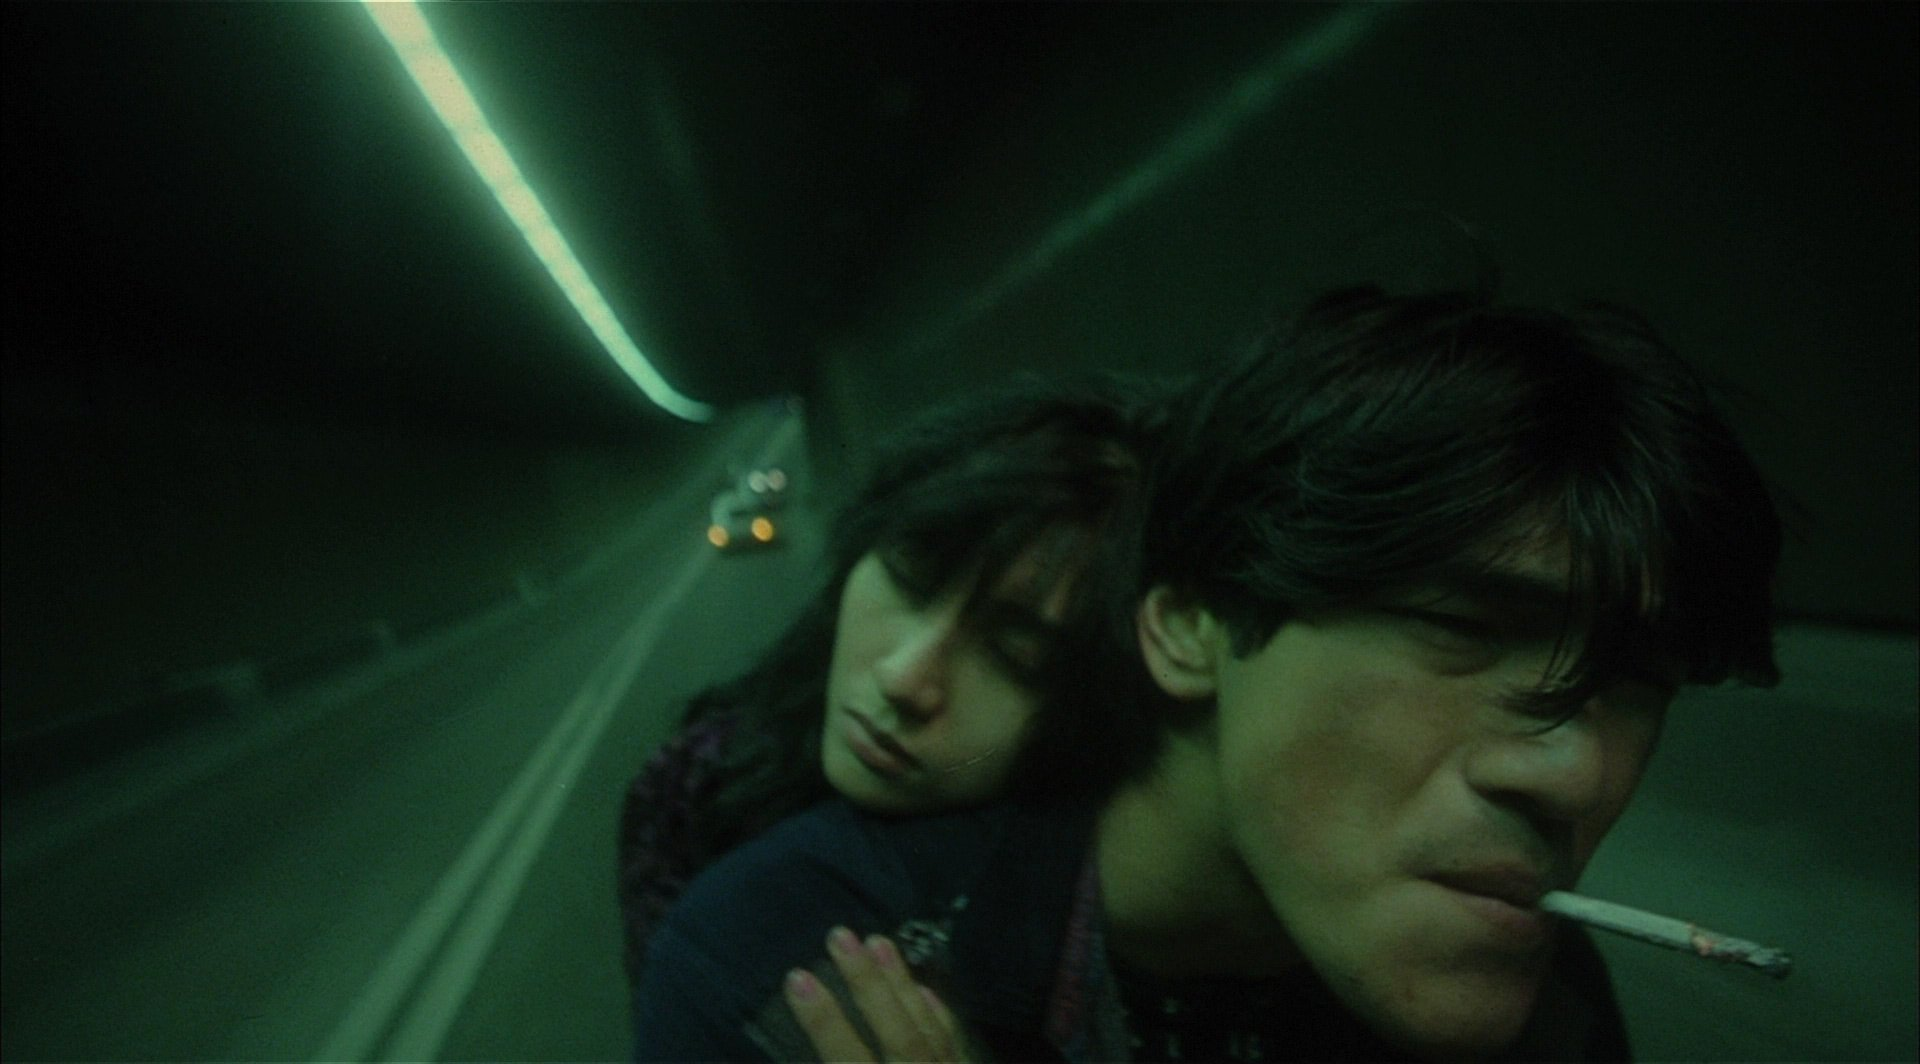 fallen angels wong kar wai and the art of longing high fallen angels 1995 wong kar wai and the art of longing high on films